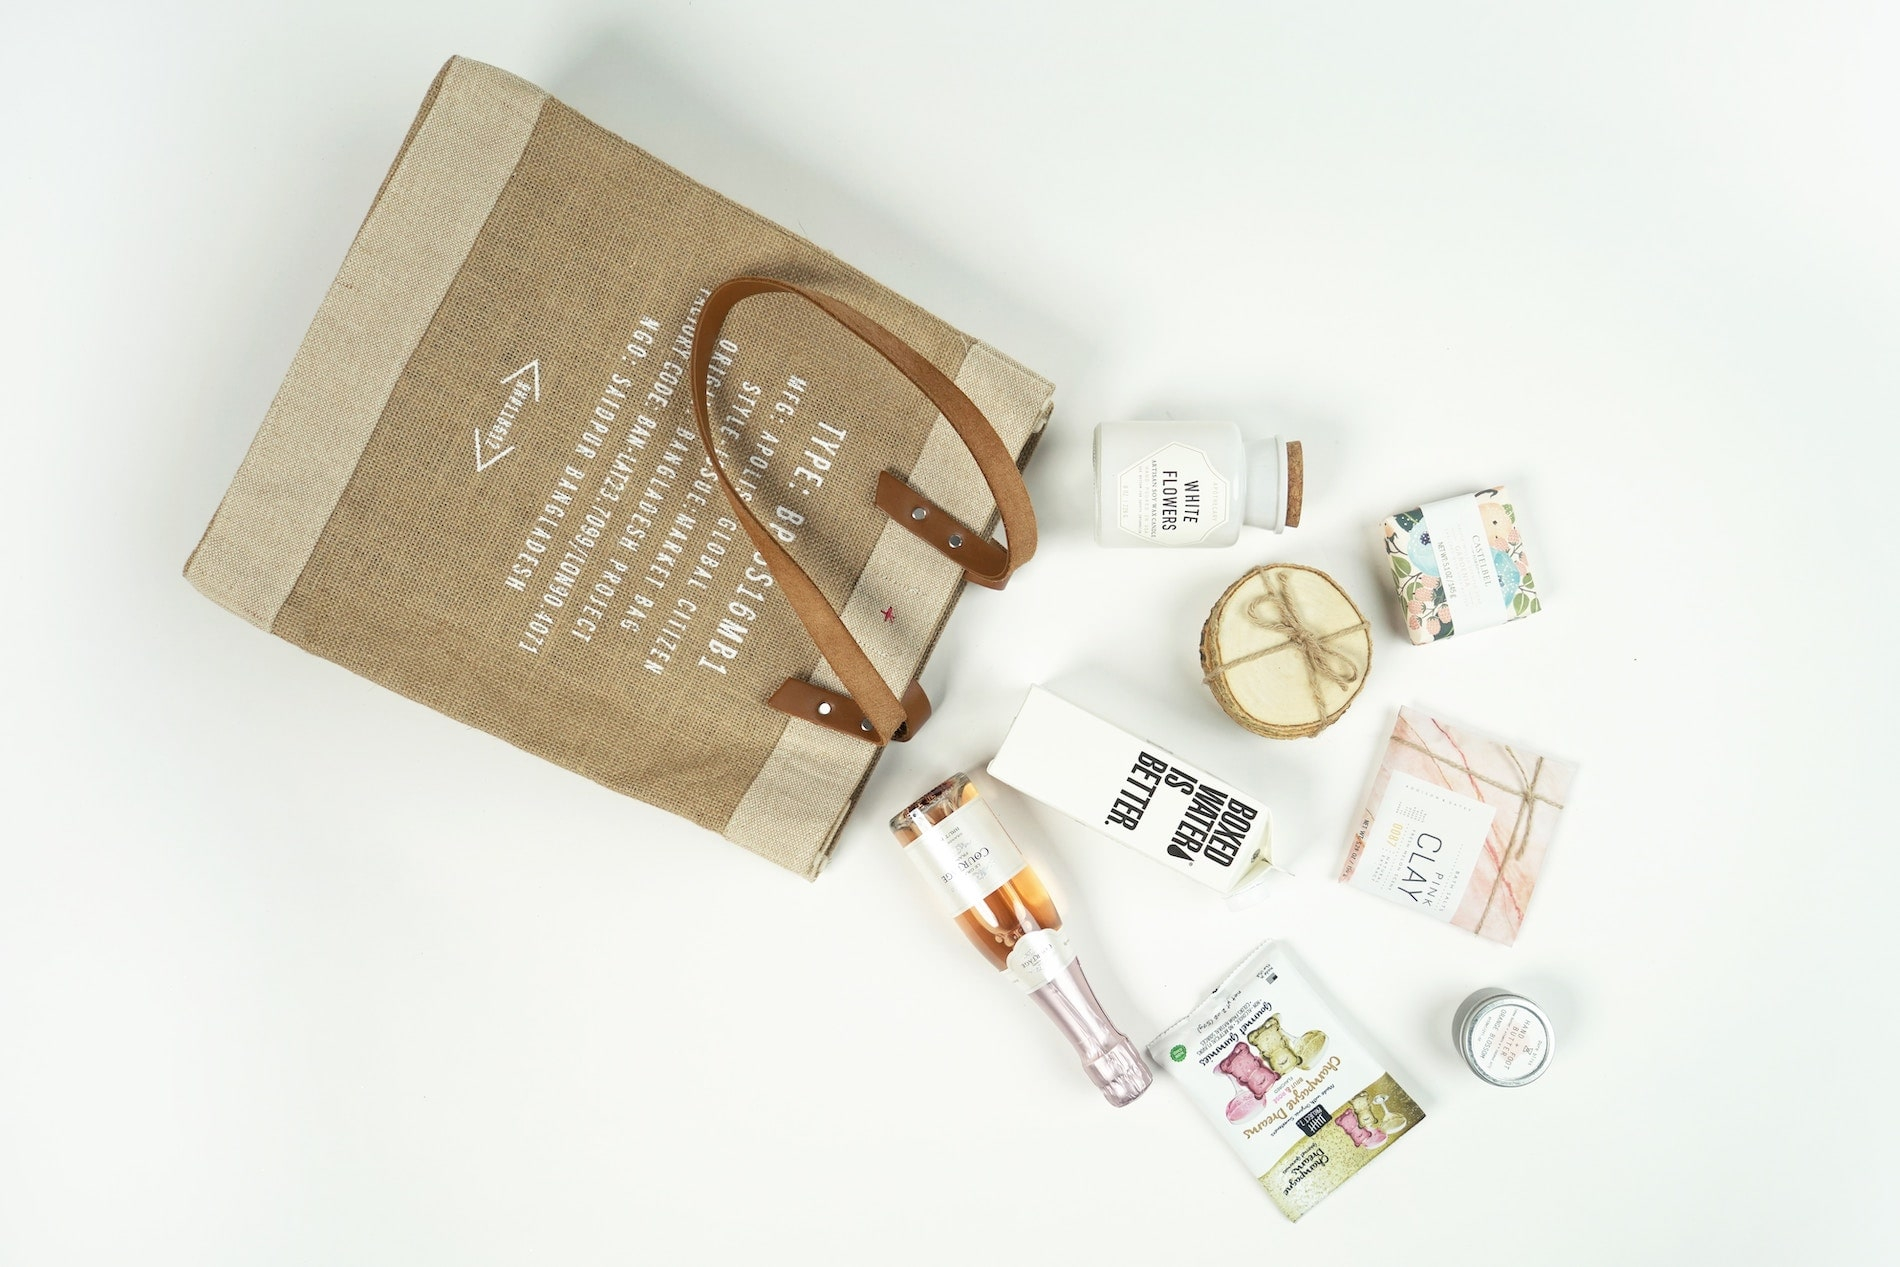 Jute shopping bag with products spilling out